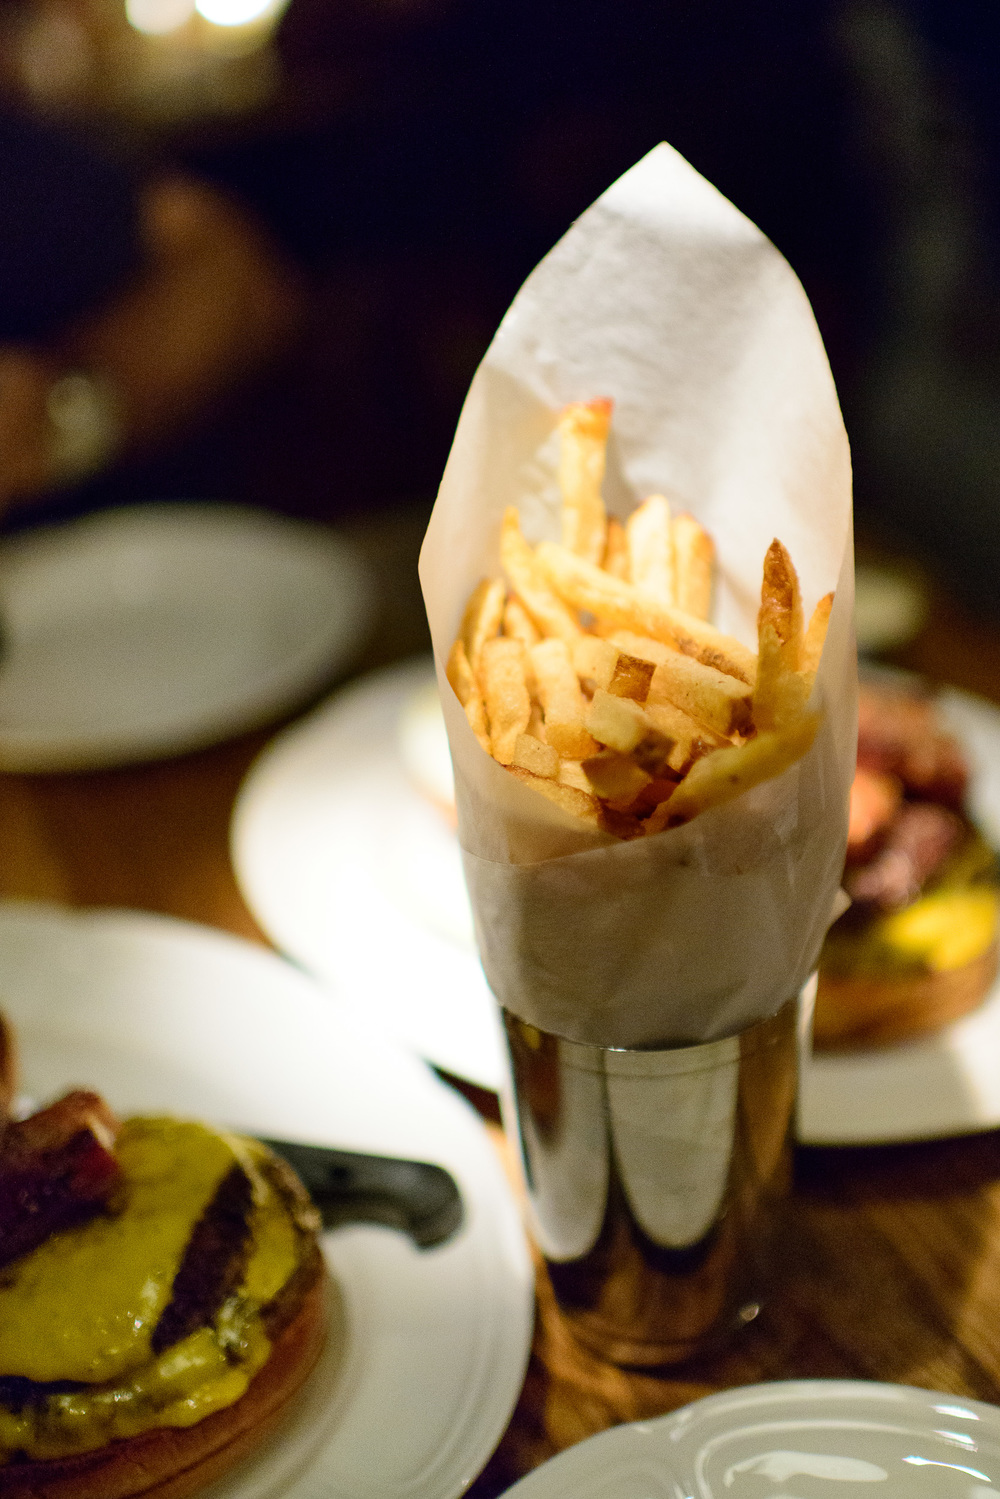 House-made fries